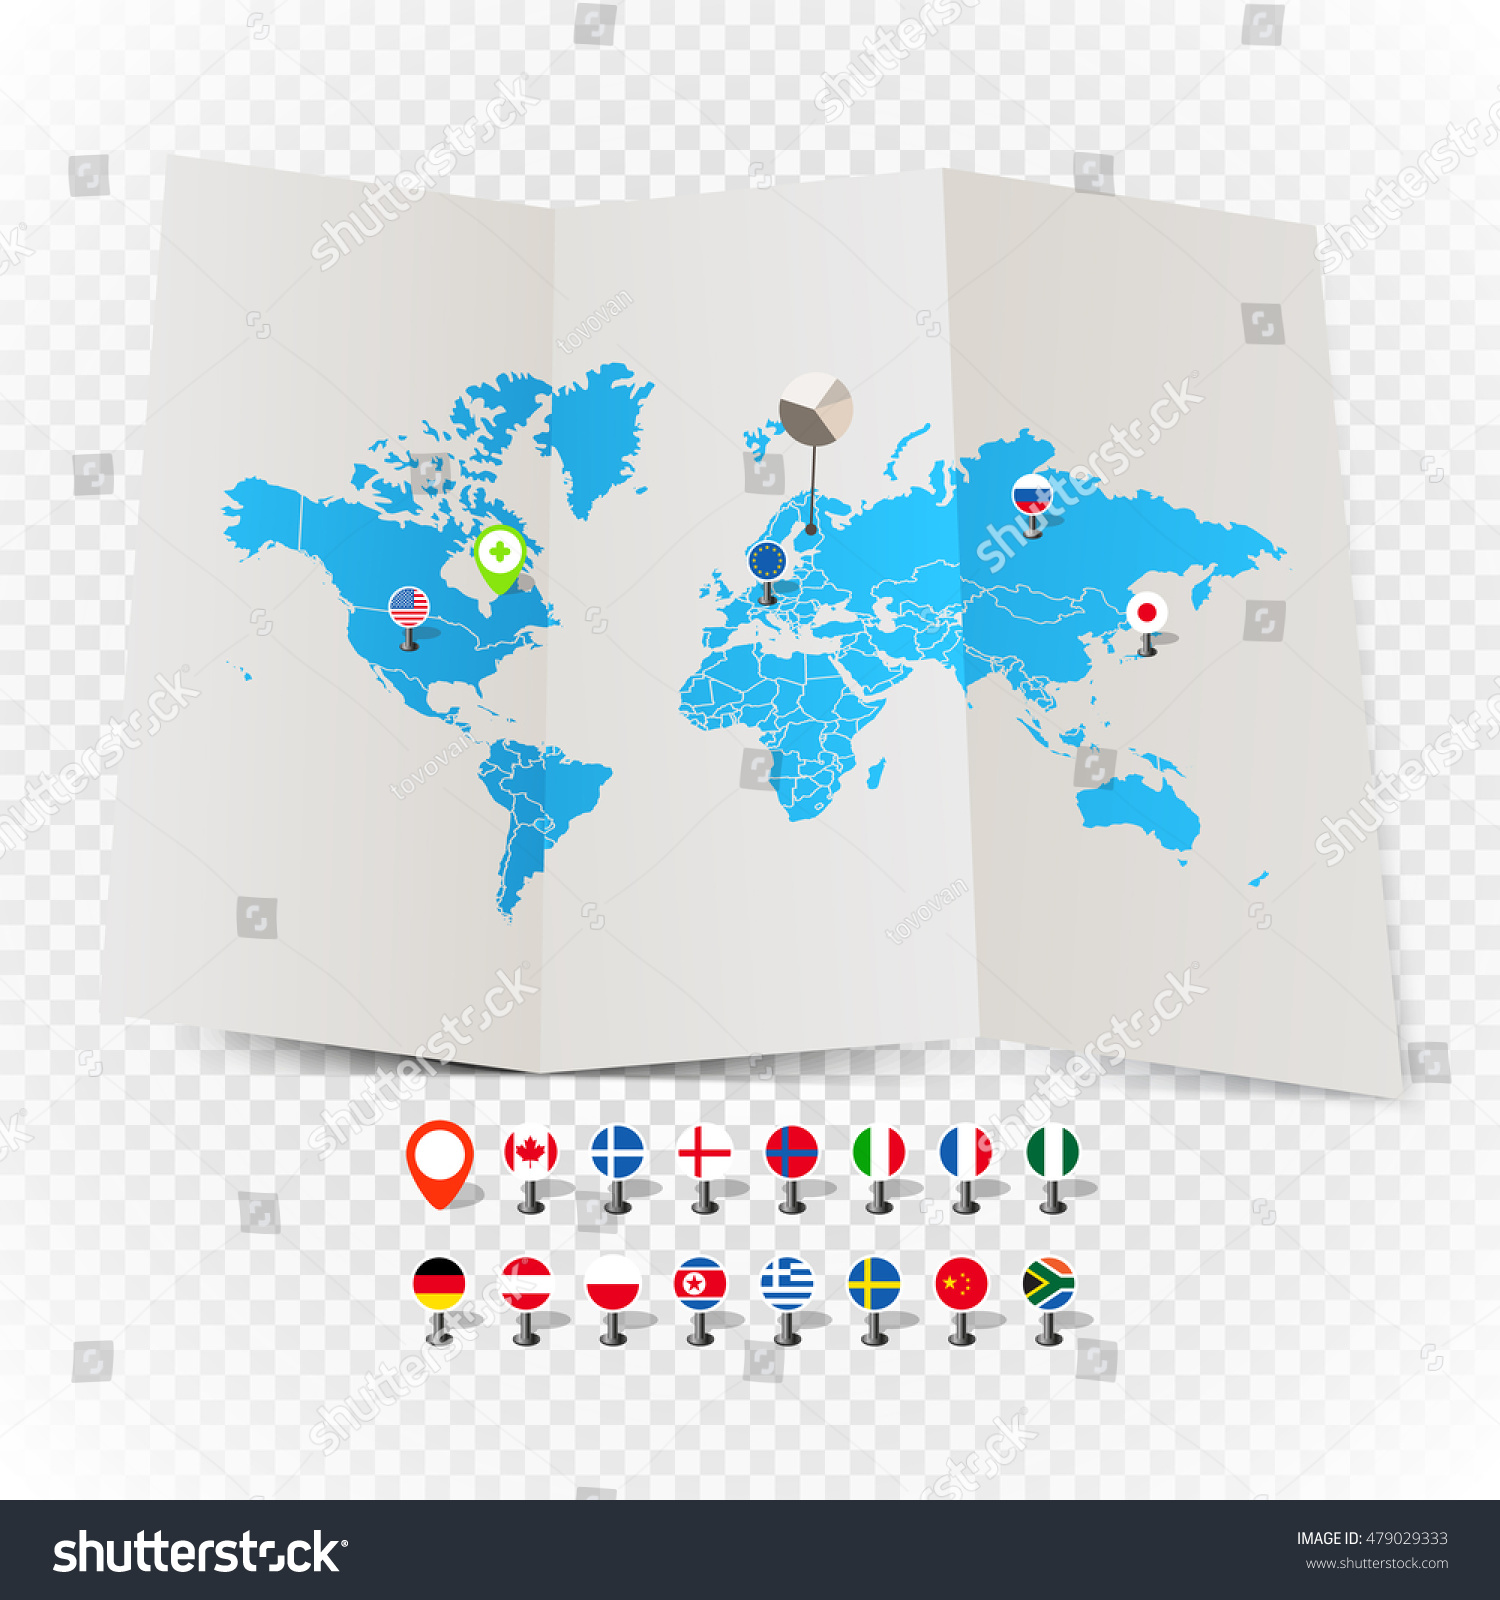 World map on old map flags stock vector 479029333 shutterstock world map on old map and flags of different countries and symbols on transparent background biocorpaavc Choice Image